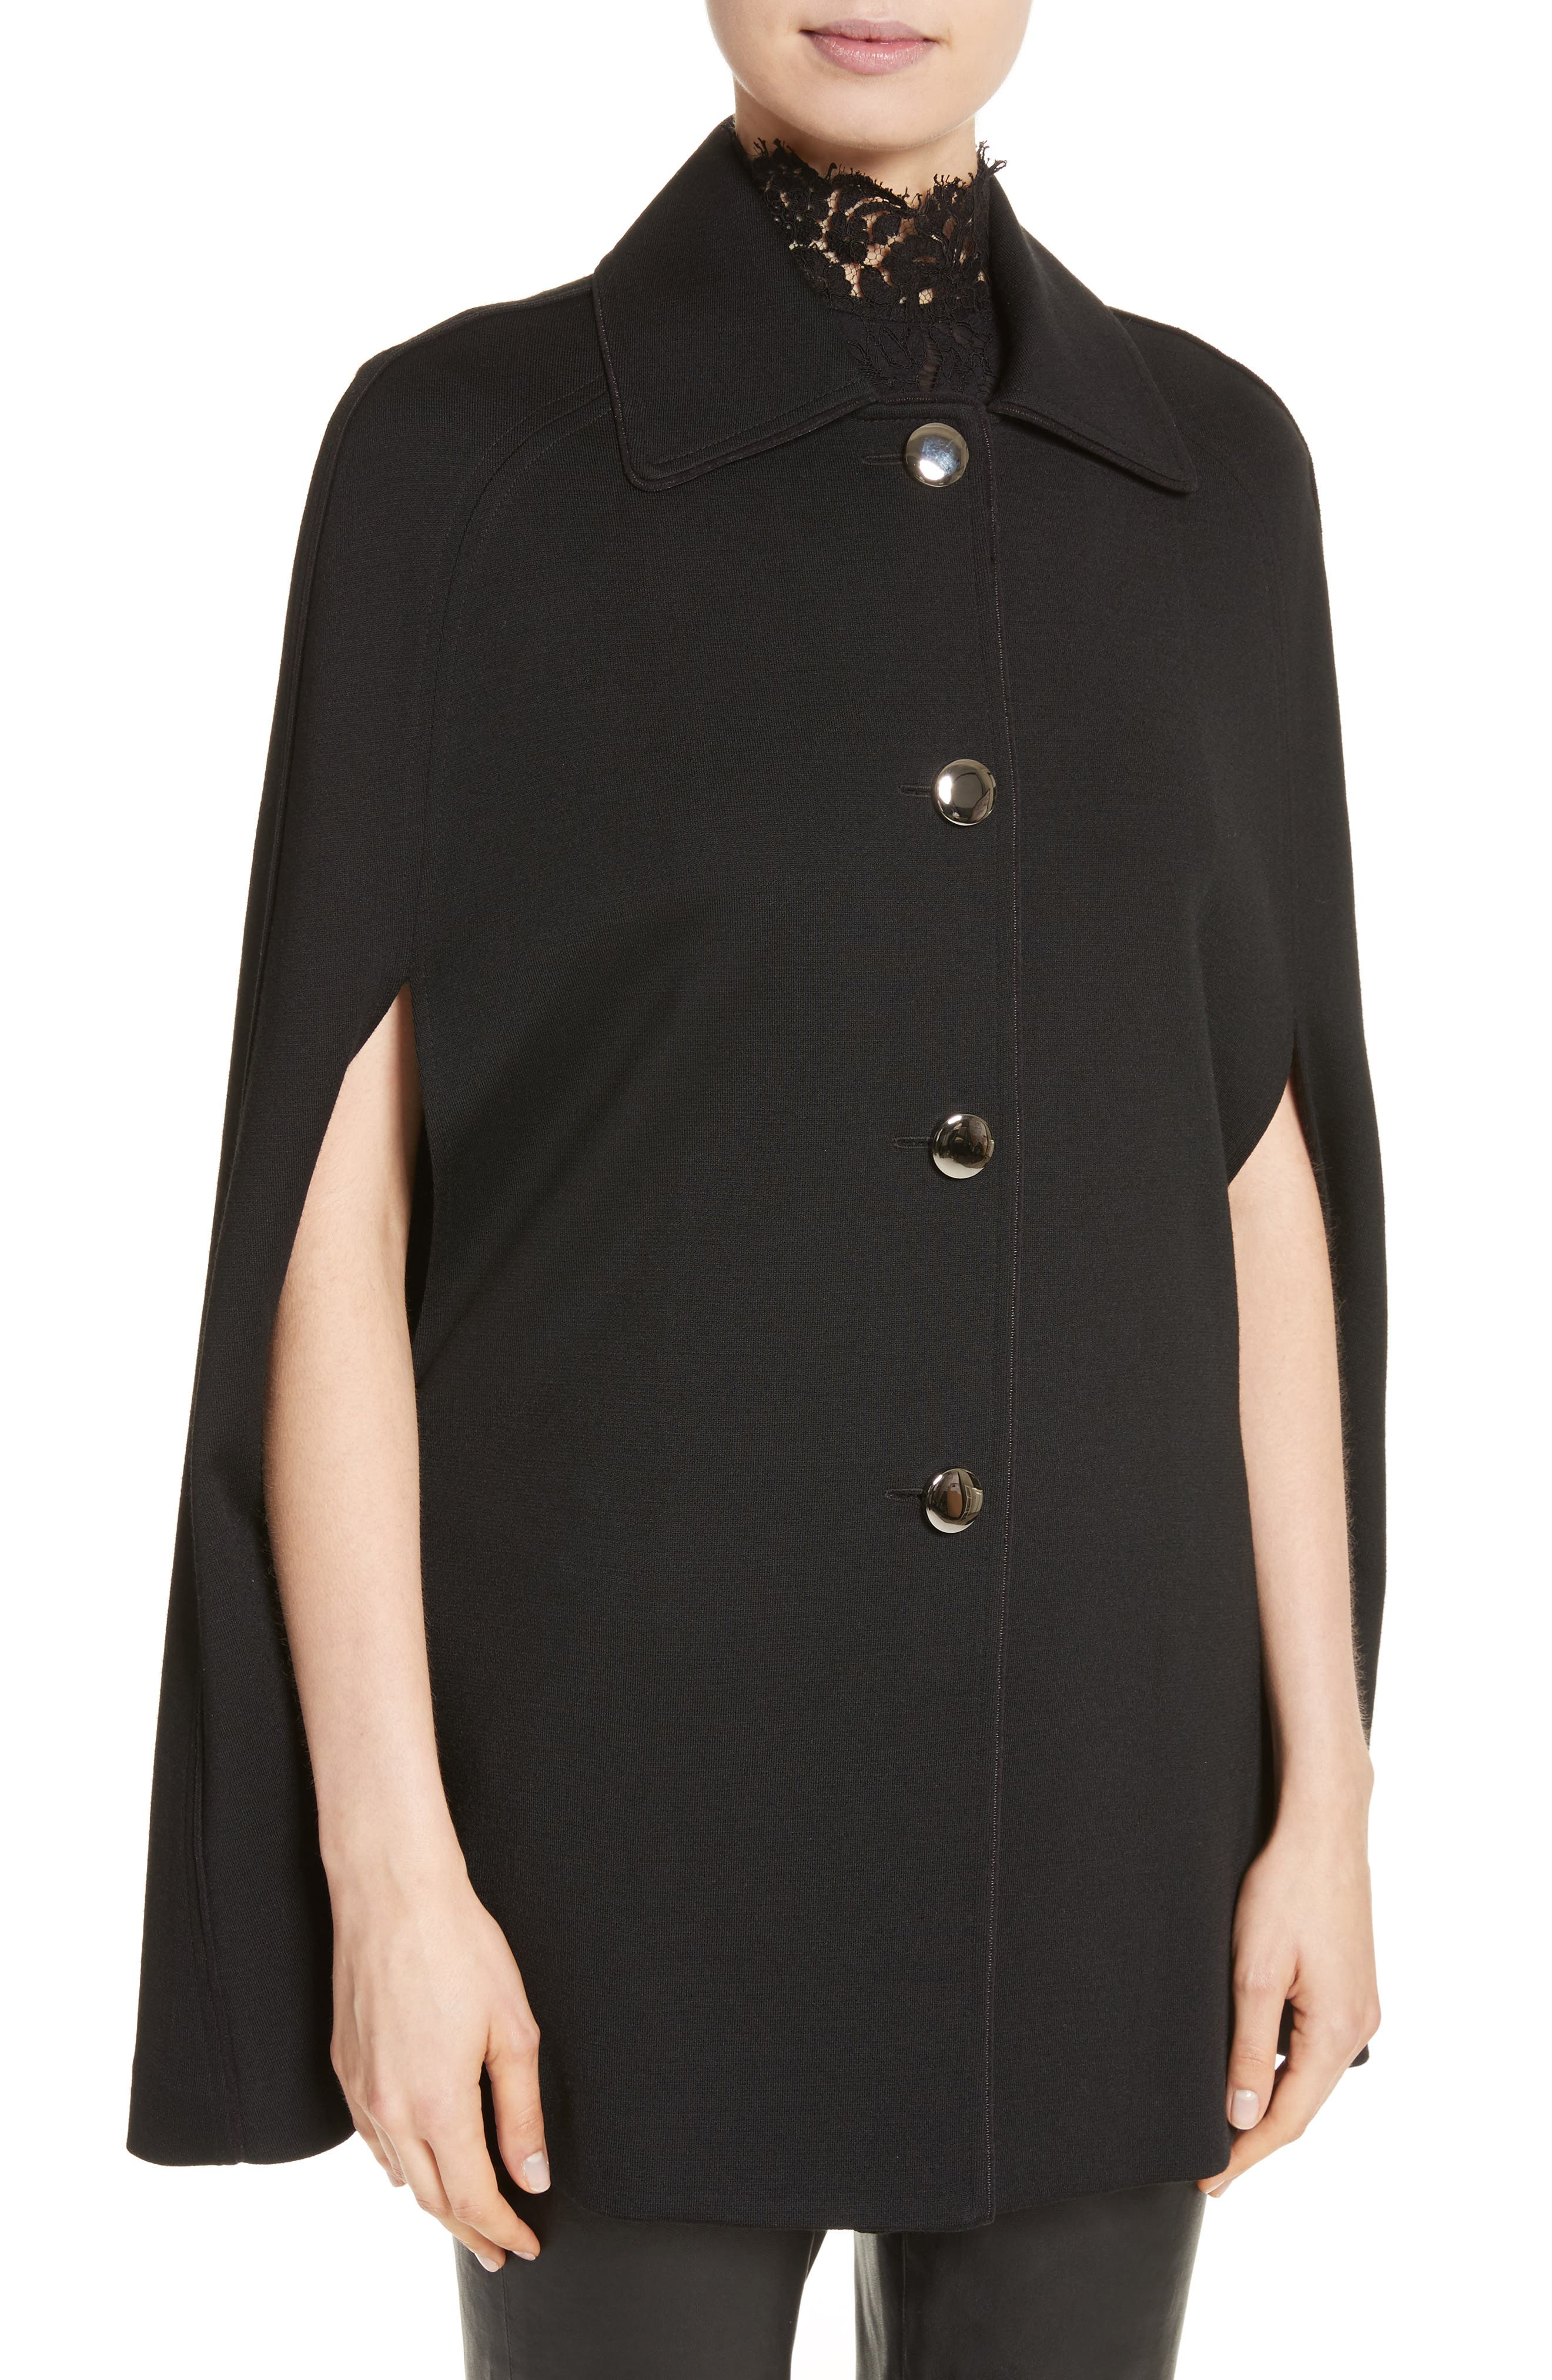 ST. JOHN COLLECTION,                             Milano Knit Collared Cape,                             Alternate thumbnail 4, color,                             001